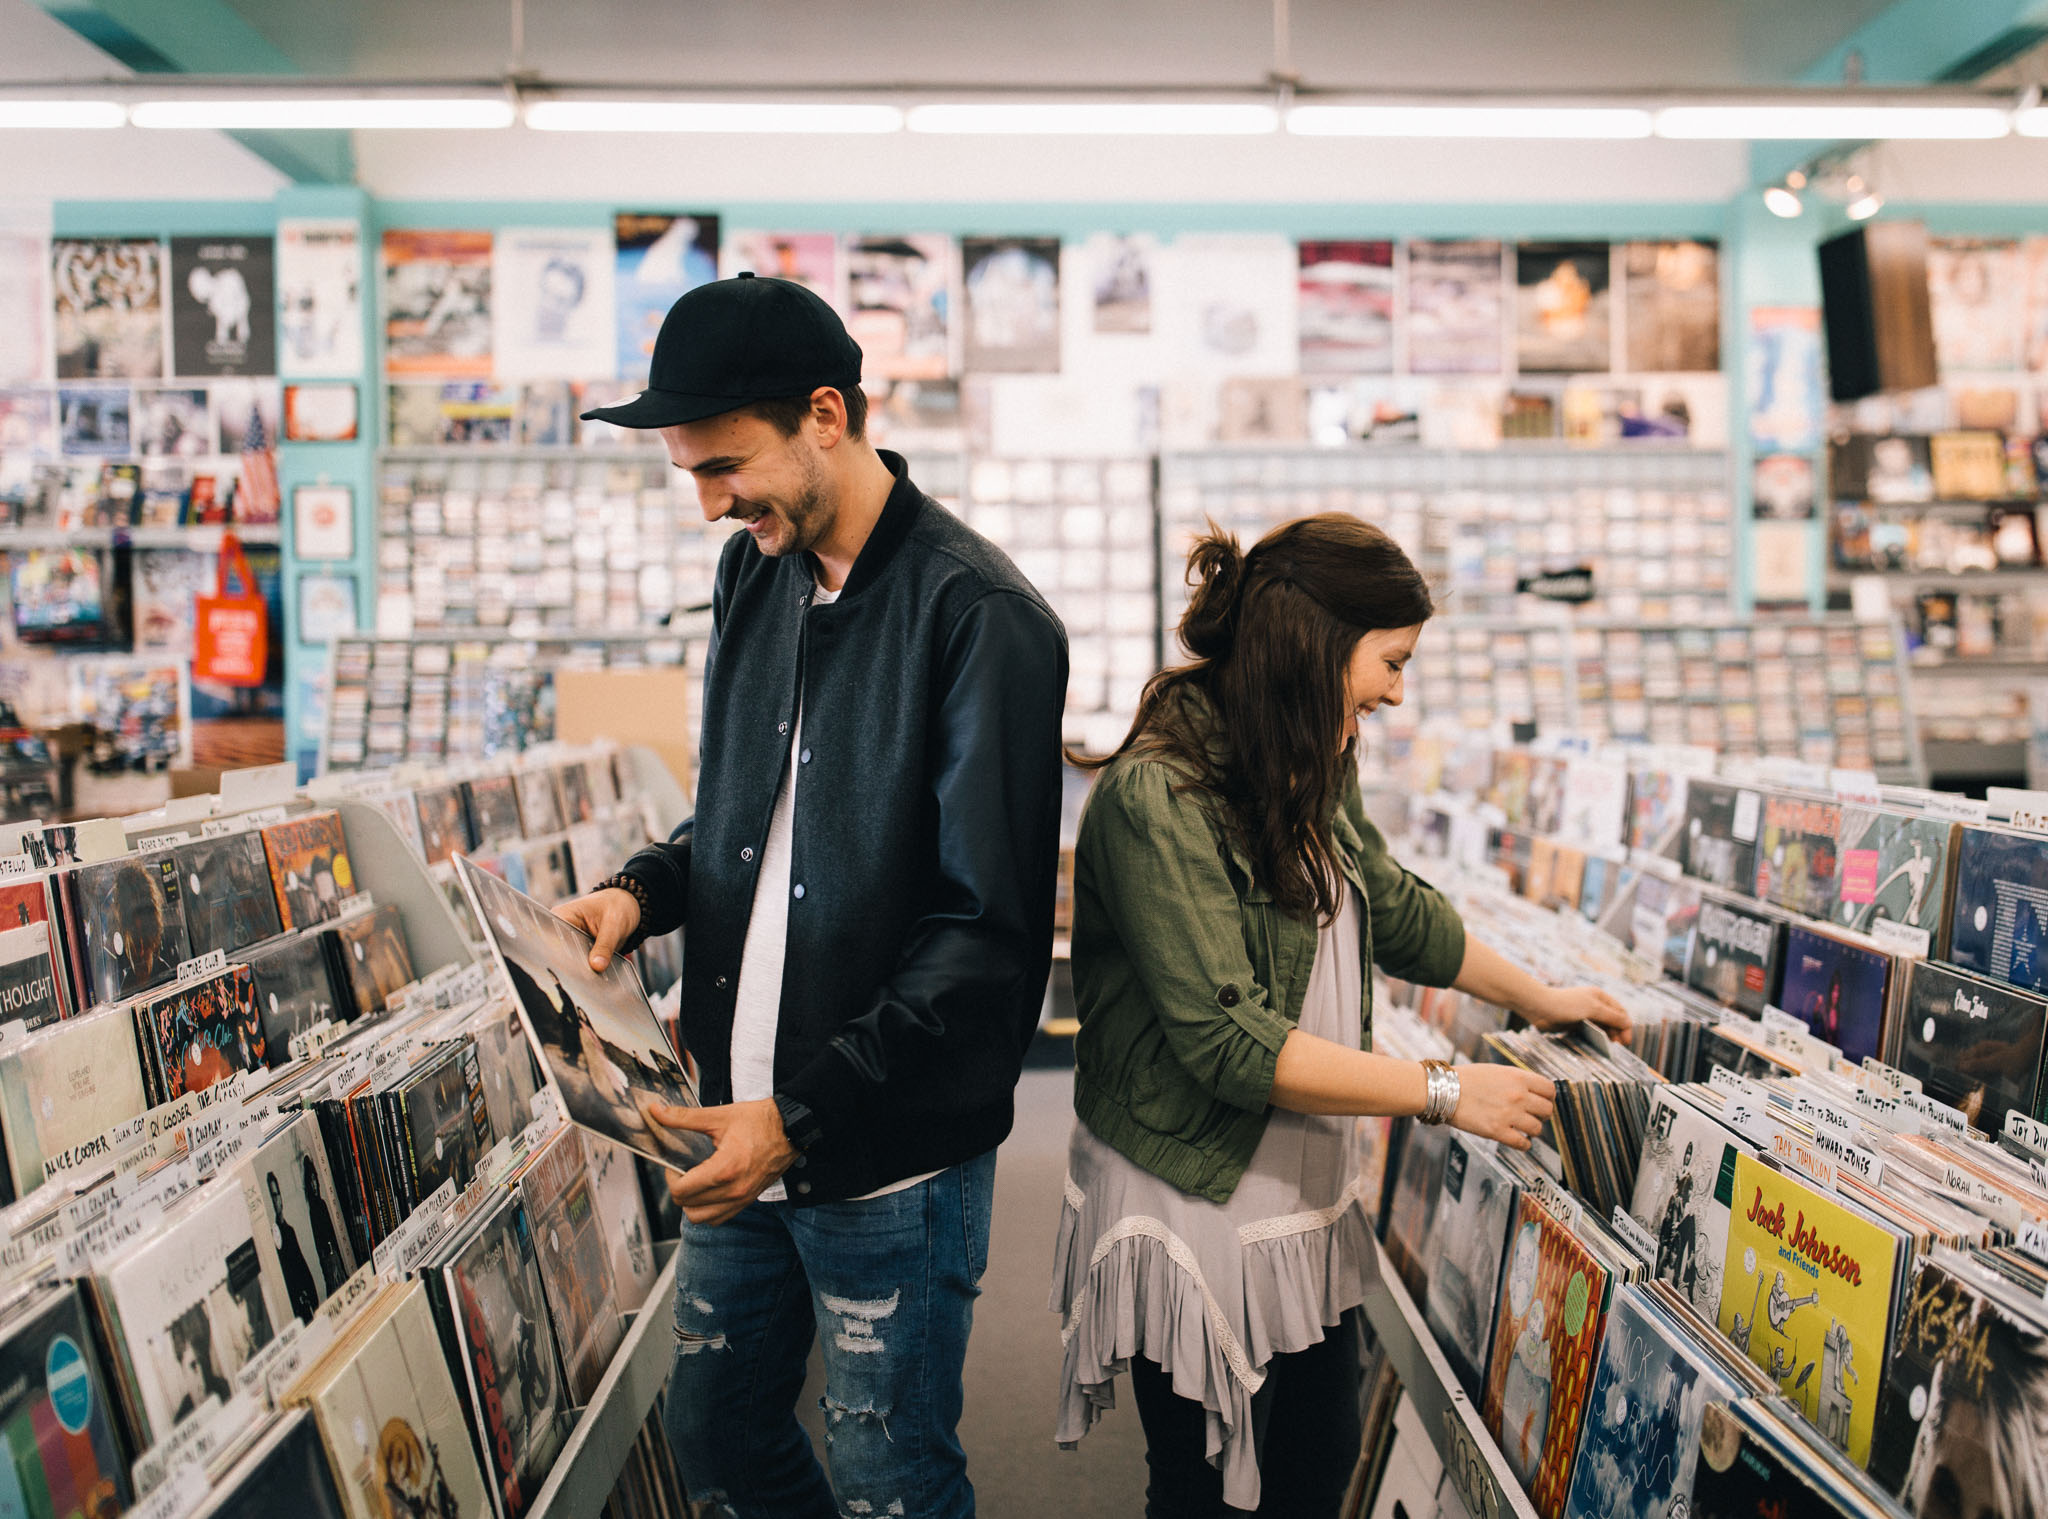 2018_02_02 Bryce and April Record Store Session Blog Edited Full Resolution 0026.jpg